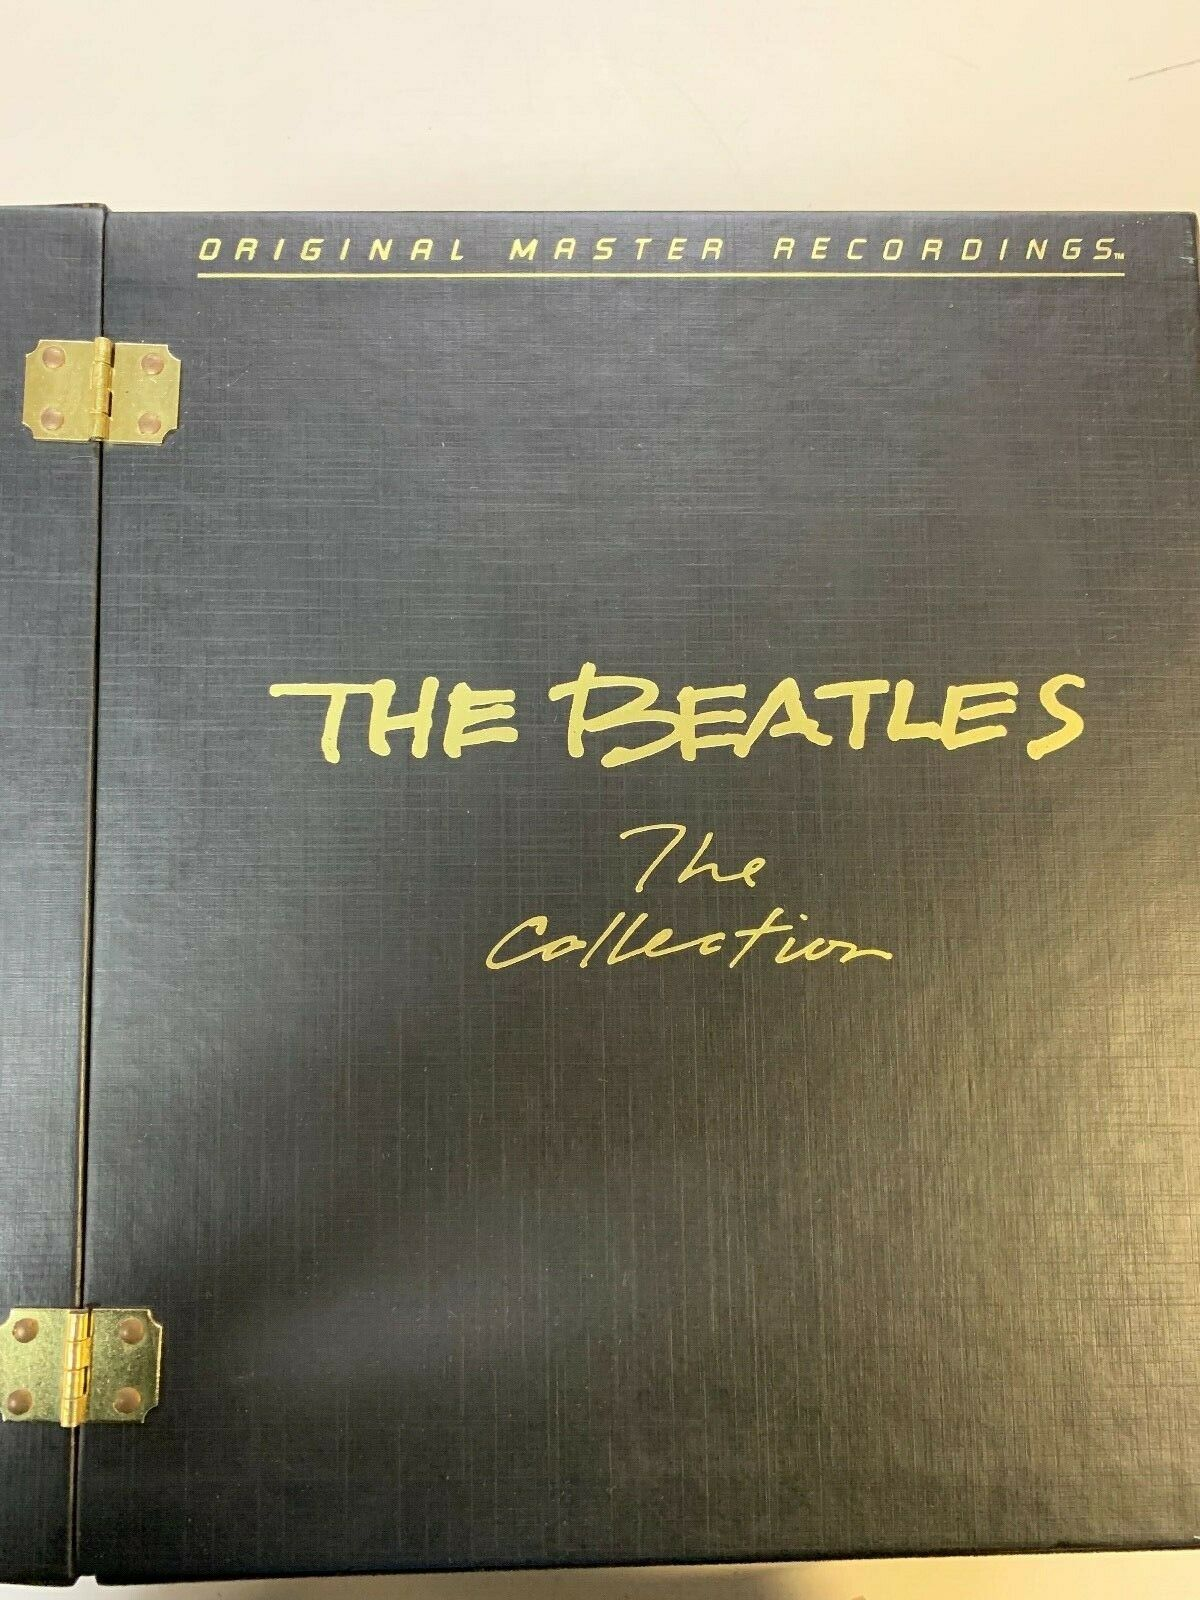 ORIGINAL MASTER RECORDINGS THE BEATLES THE COLLECTION 14 ALBUMS + PHOTO MAGAZINE